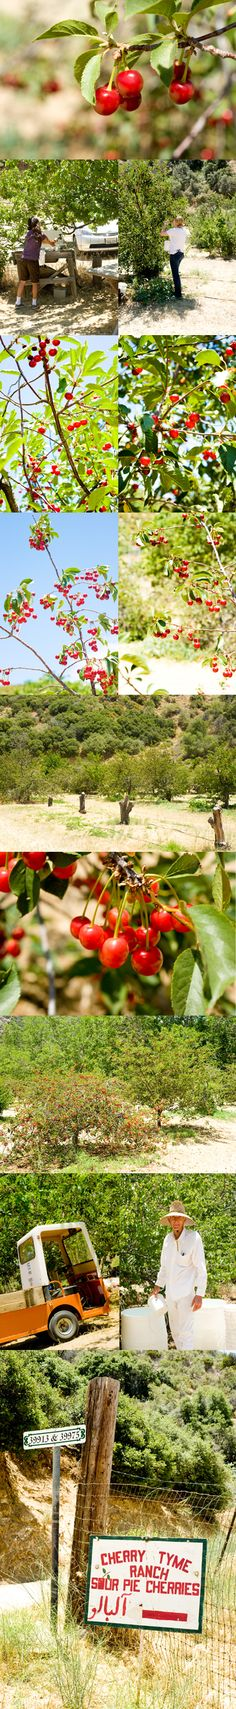 sour cherry picking at cherry tyme orchard in leona valley